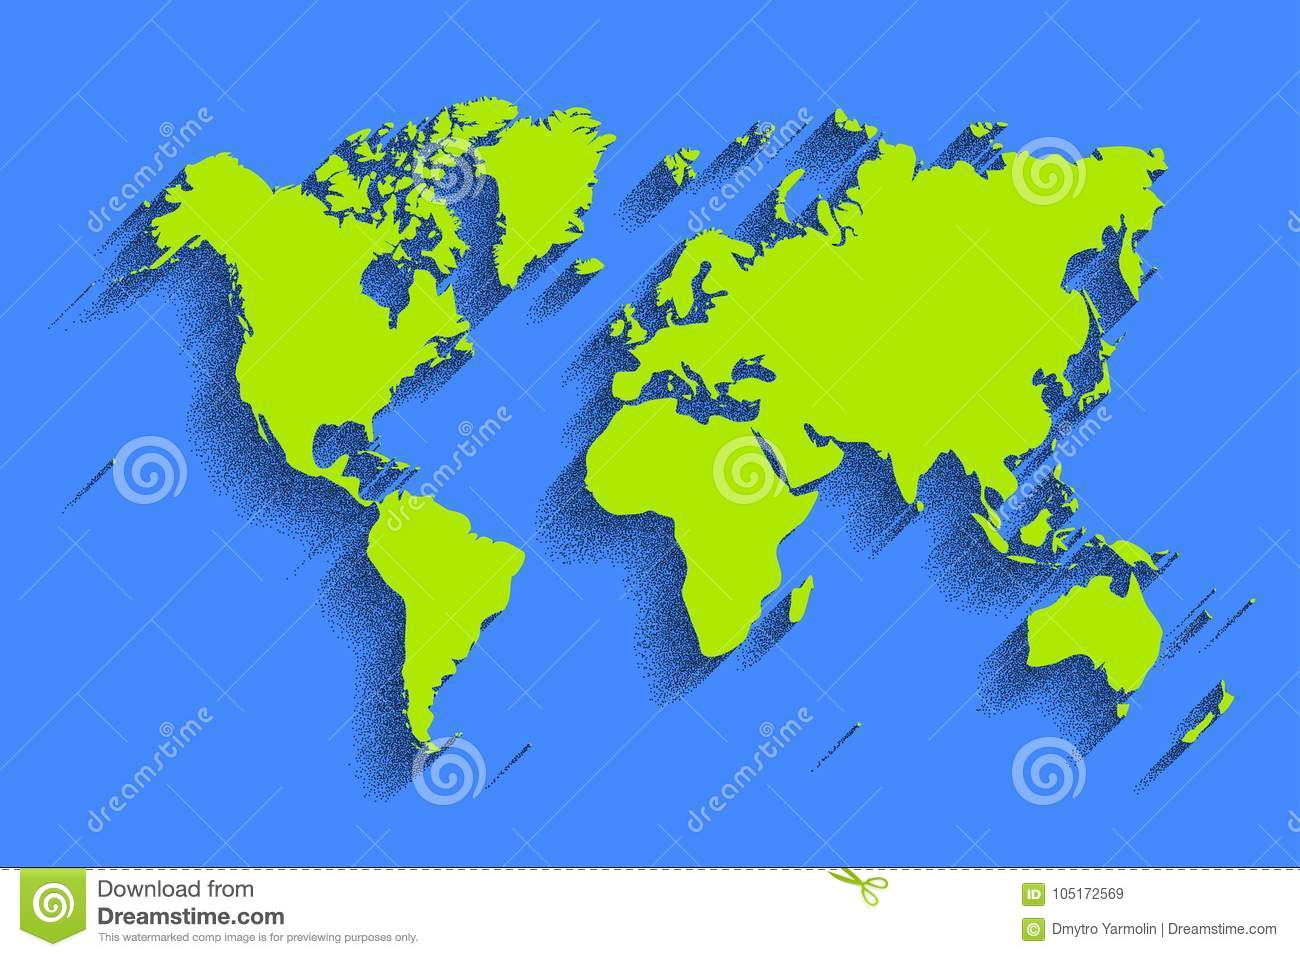 World map vector color background with shadow stock vector world map vector color background with shadow royalty free vector gumiabroncs Image collections